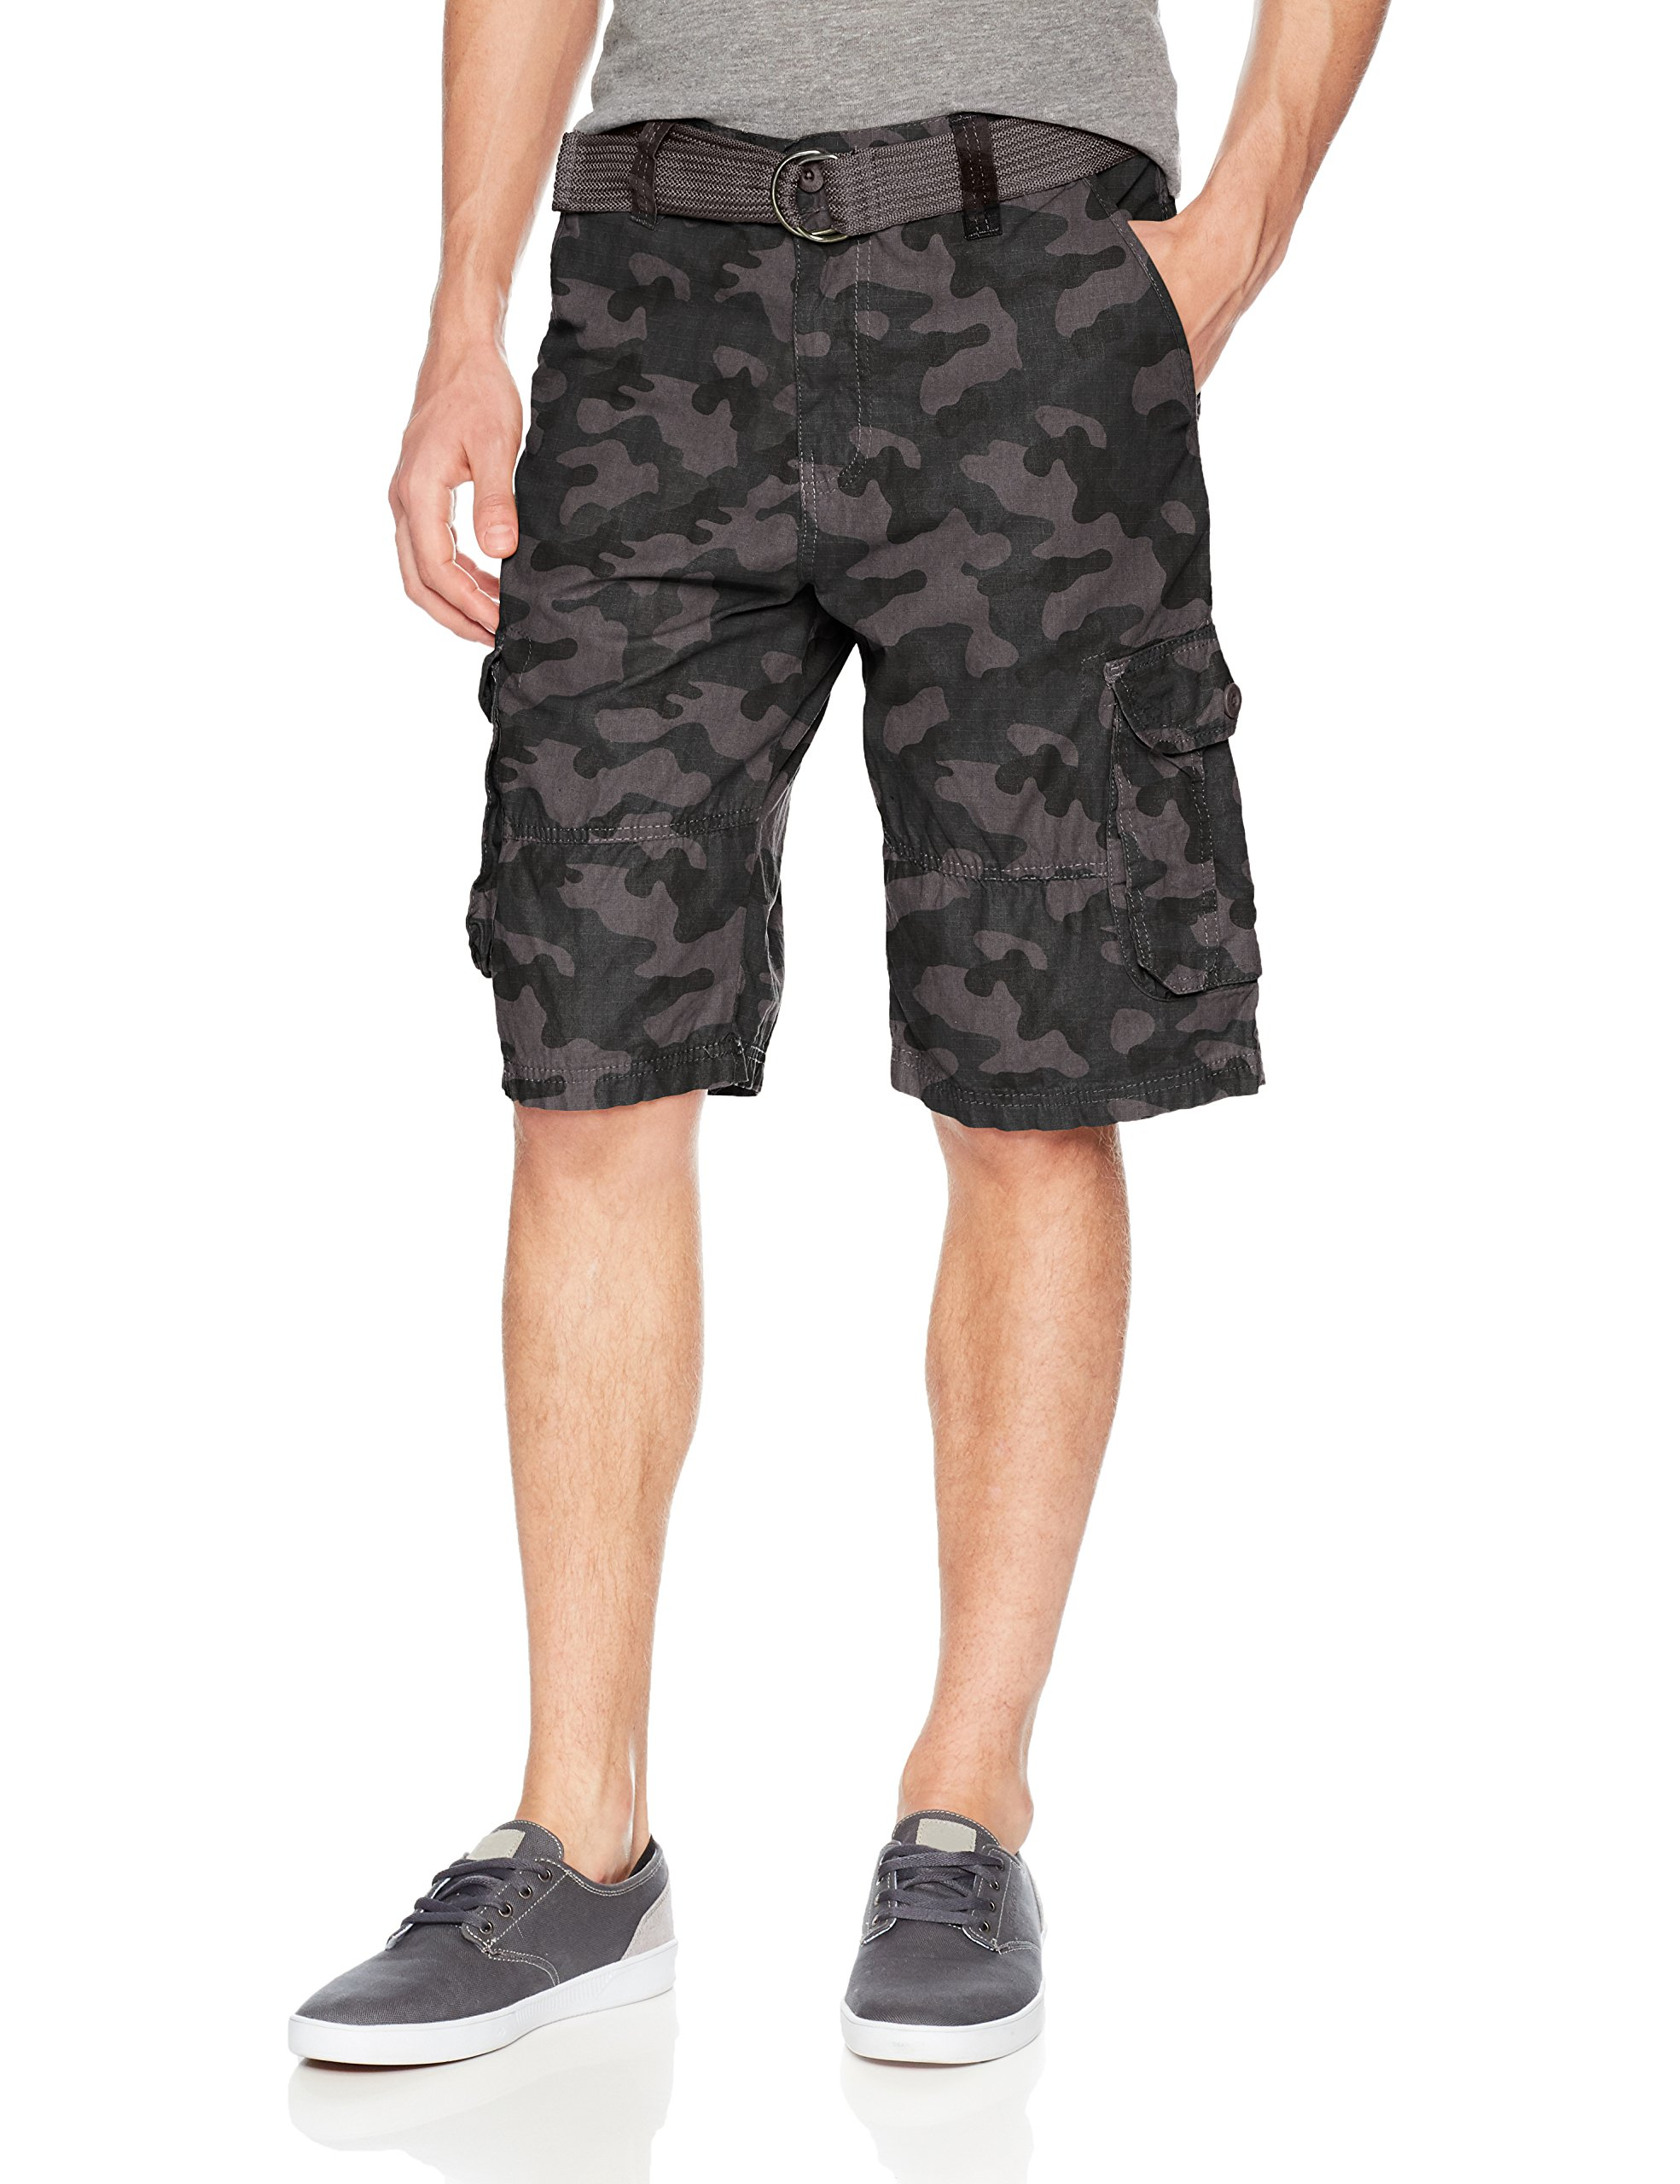 3ecb3caf42 Southpole Men's All-Season Belted Ripstop Basic Cargo Short, Grey  Black/New, 34